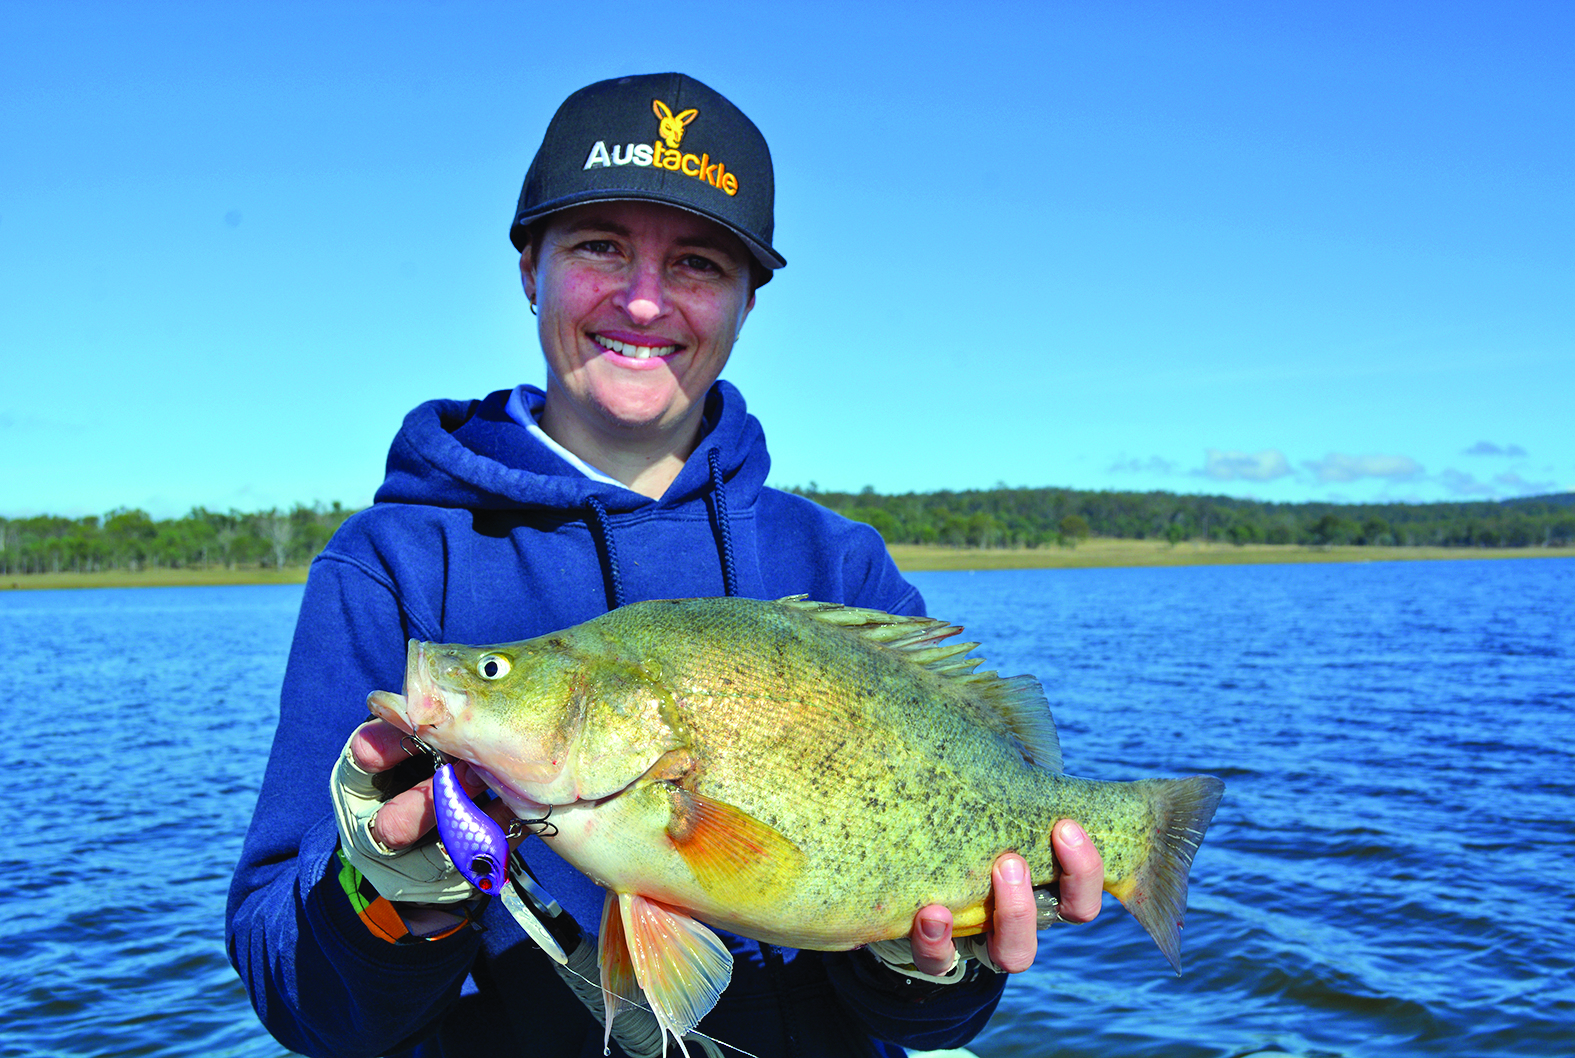 James Farraher boated the biggest bass at the grand final.